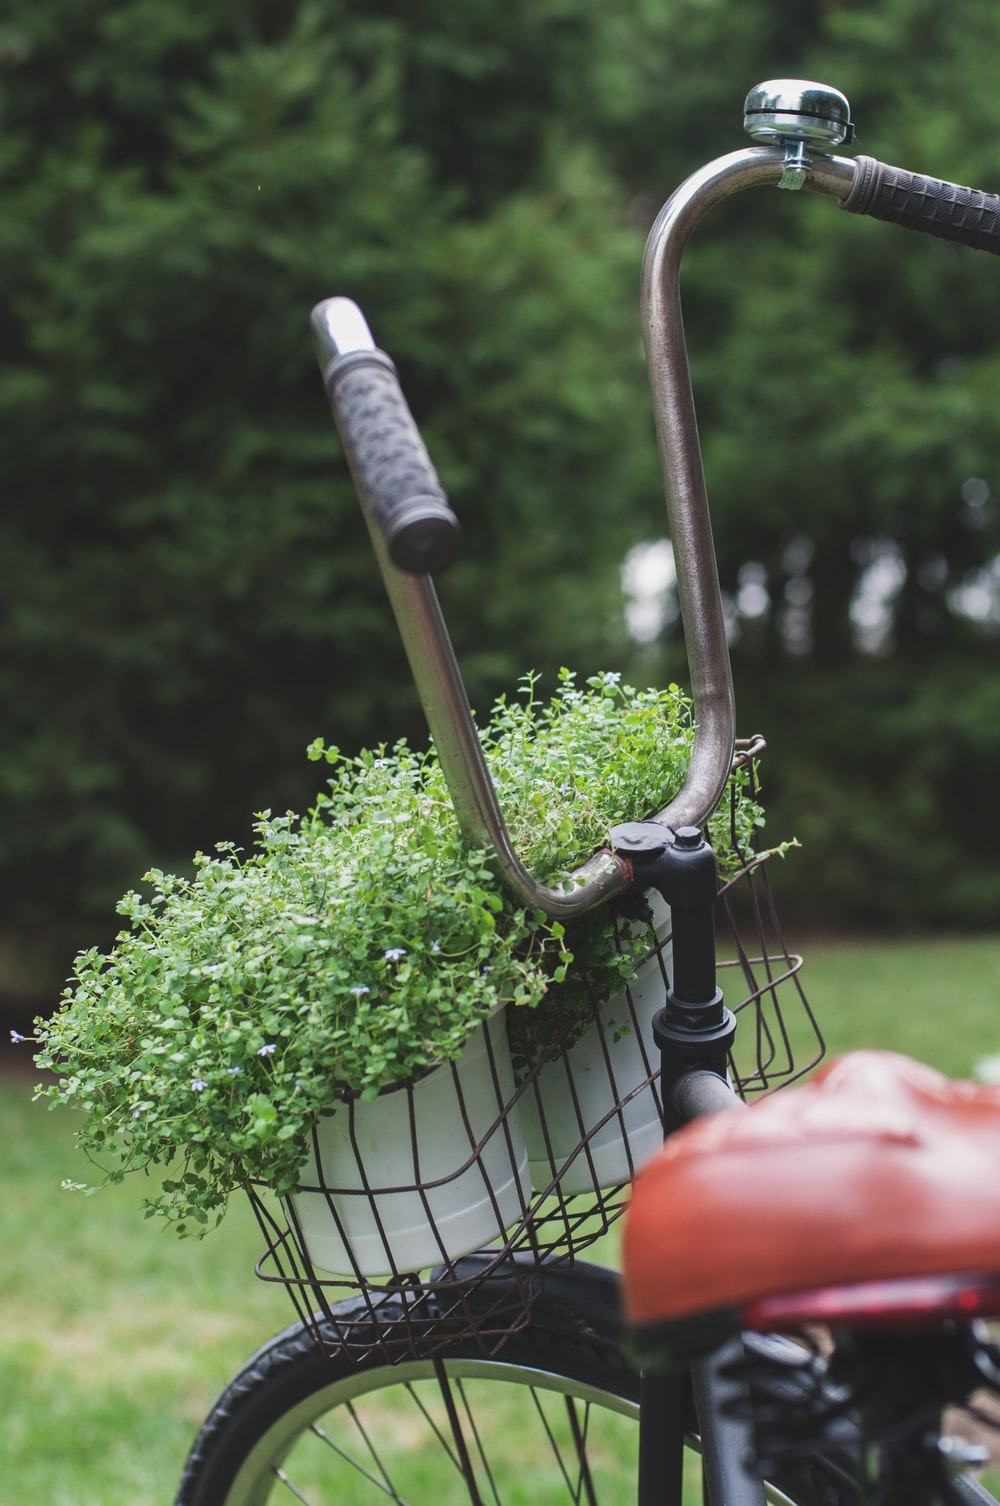 close-up photography of black bicycle carrying pot of green plants